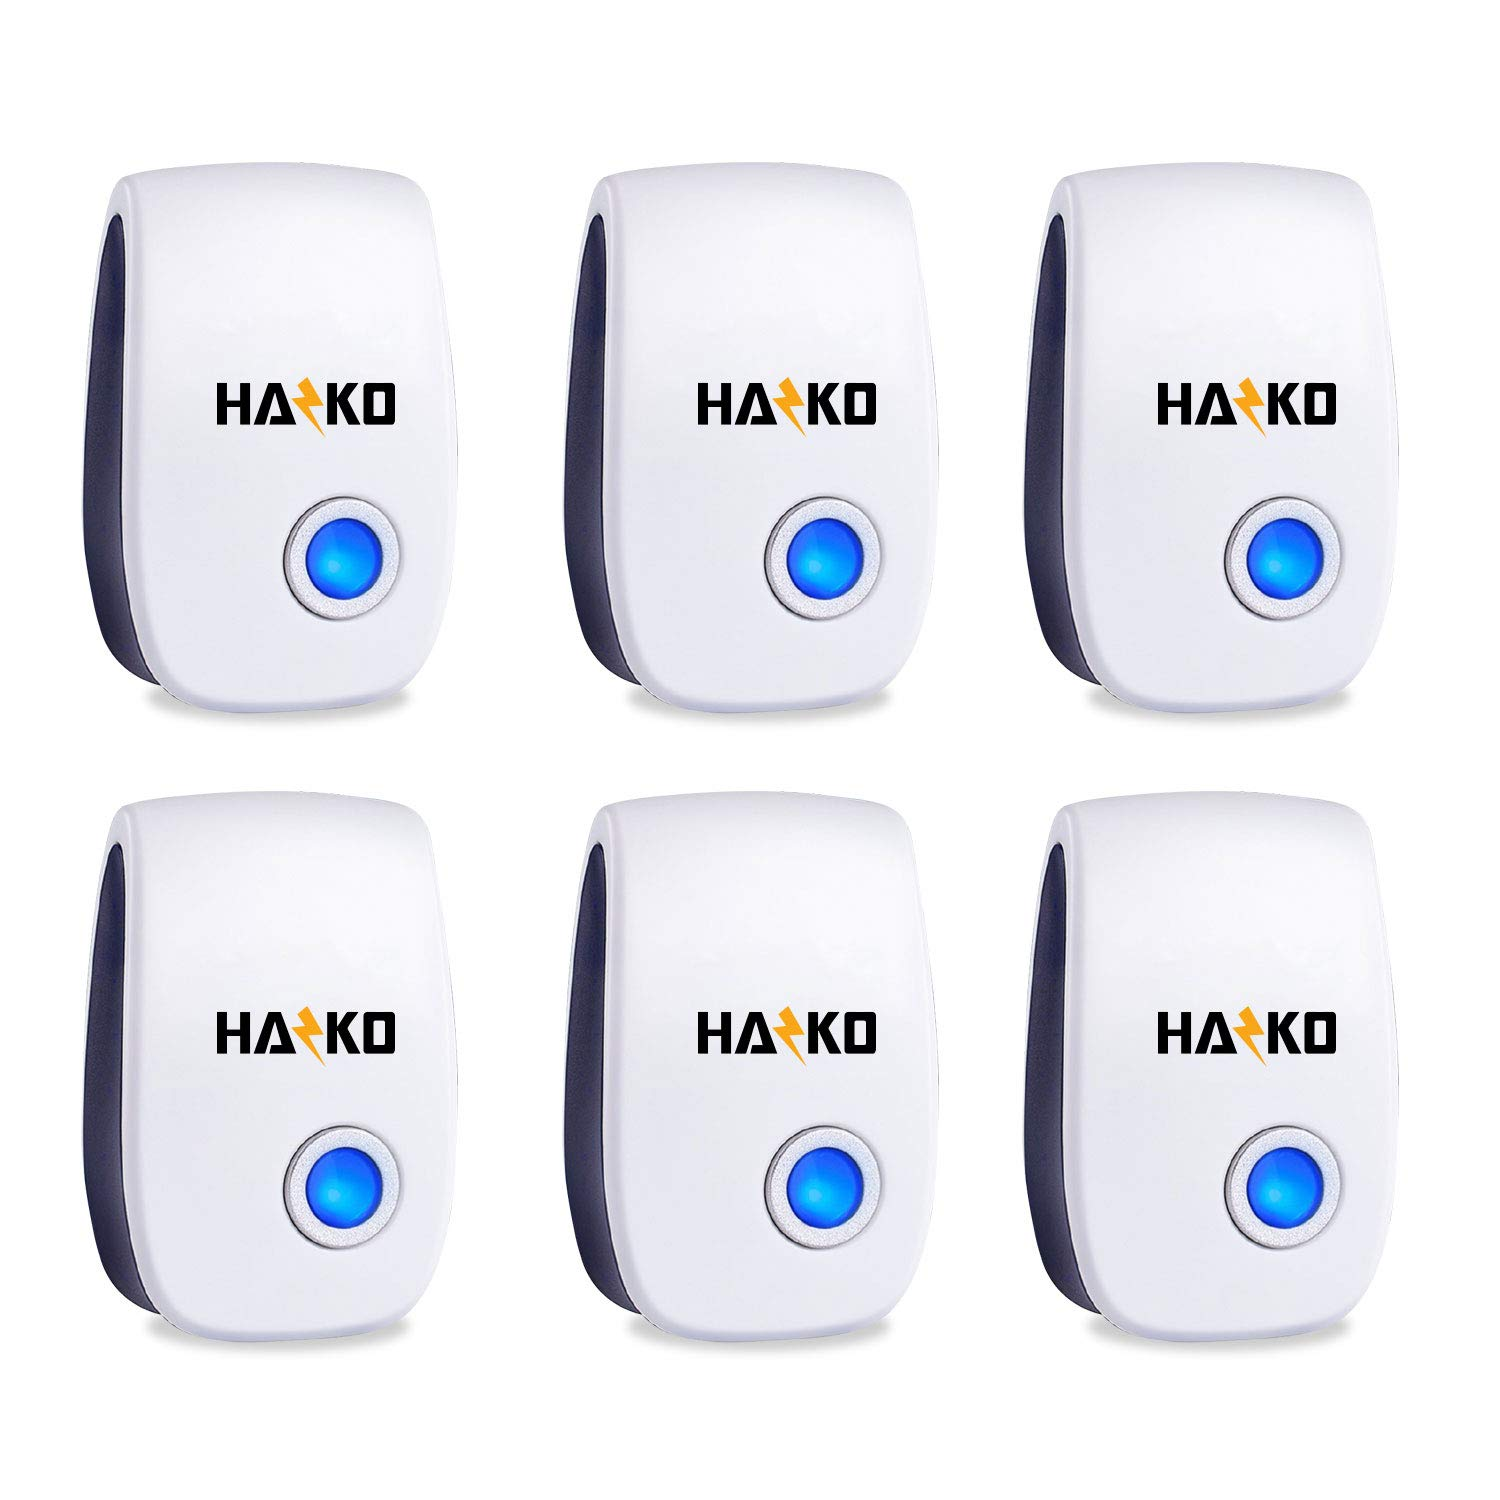 HAZKO Ultrasonic Pest Repellent 6 Packs - Electronic and Ultrasound Pest Repellent - Insects, Mosquitoes, Mice, Spiders, Ants, Rats, Roaches, Bugs Control - Friendly and Effective Pest Repeller by HAZKO